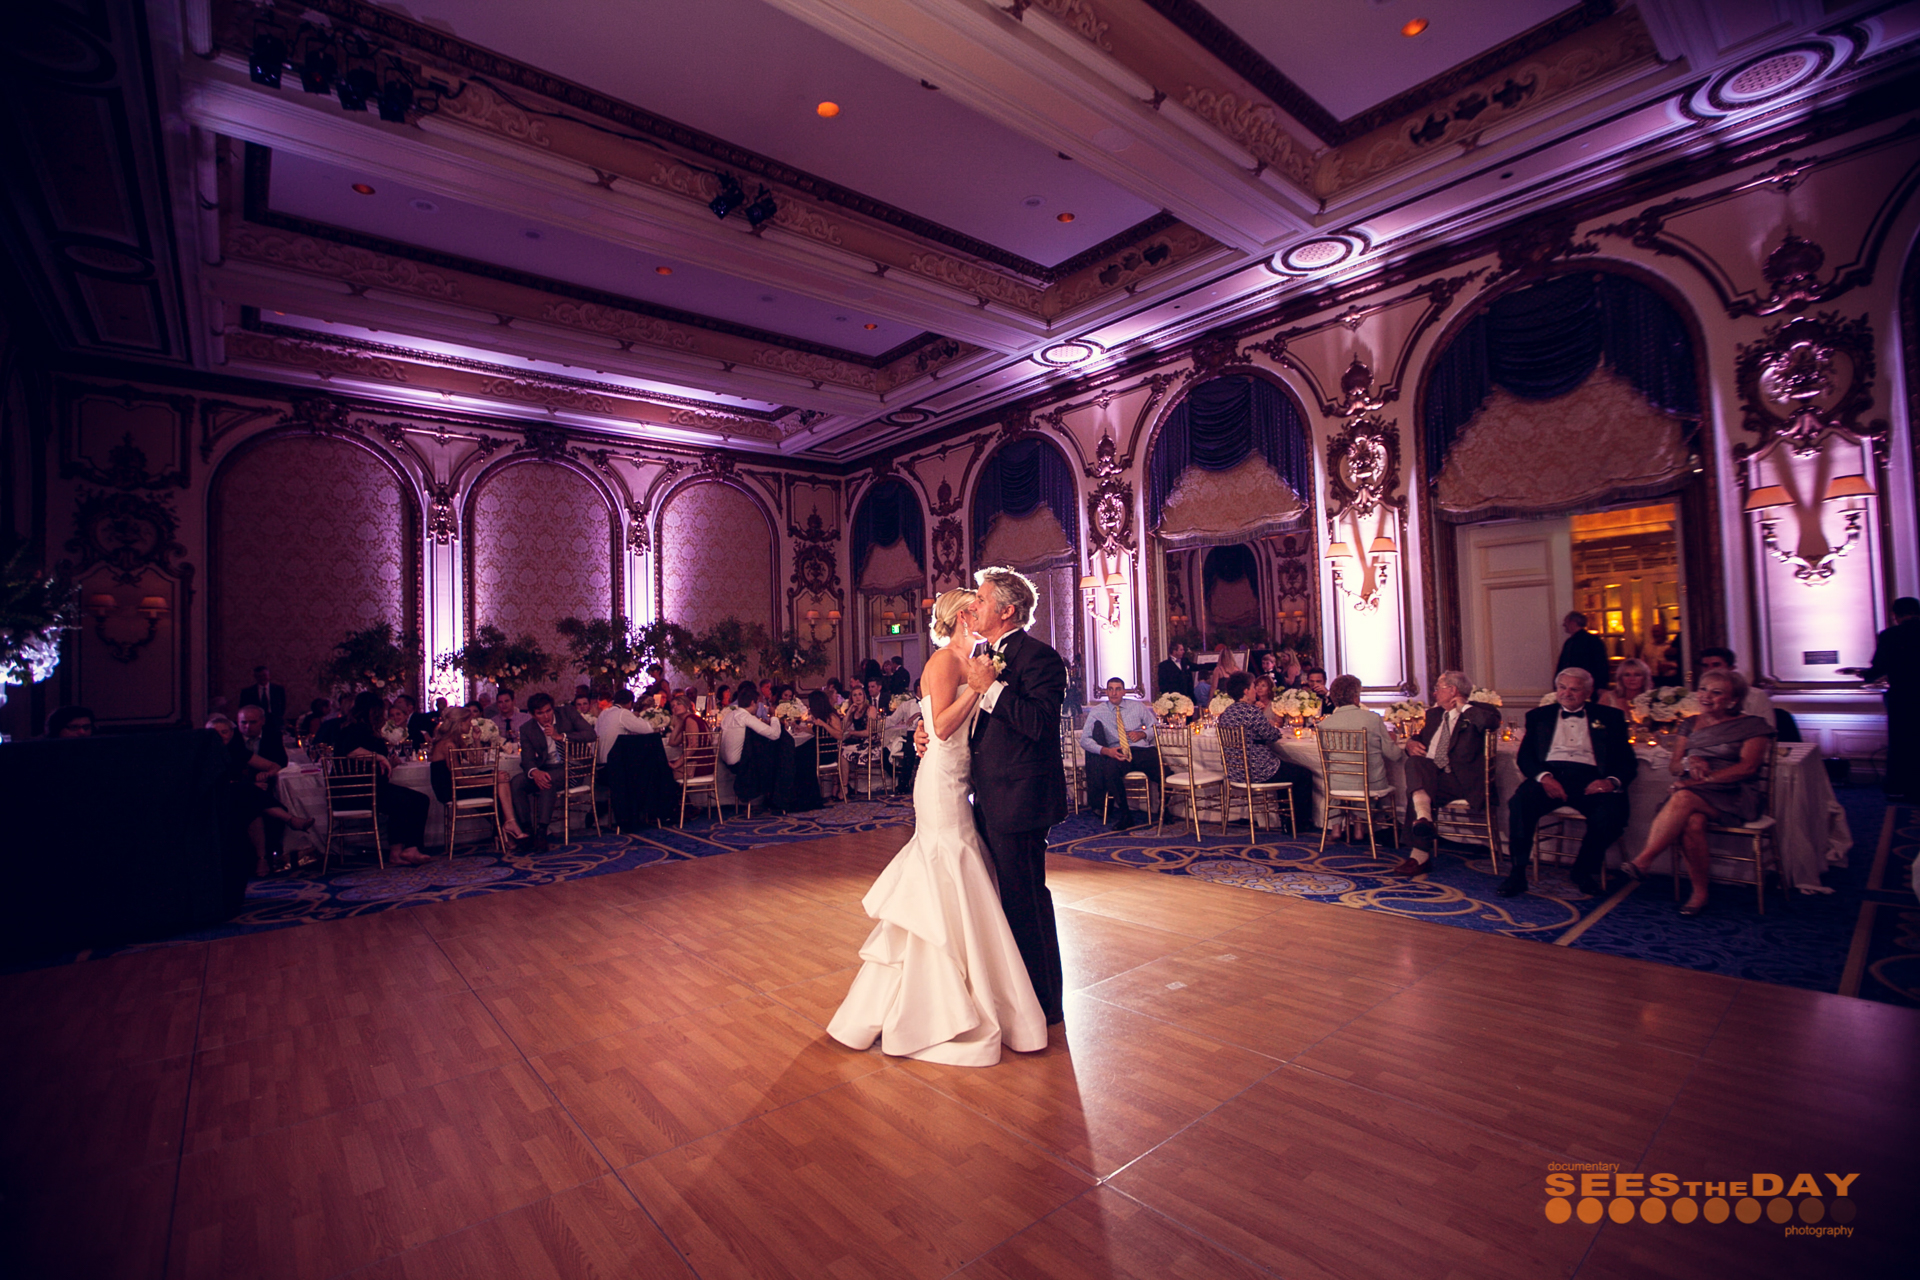 San_Francisco_Wedding_Photographer_Sees_The_Day_031.jpg